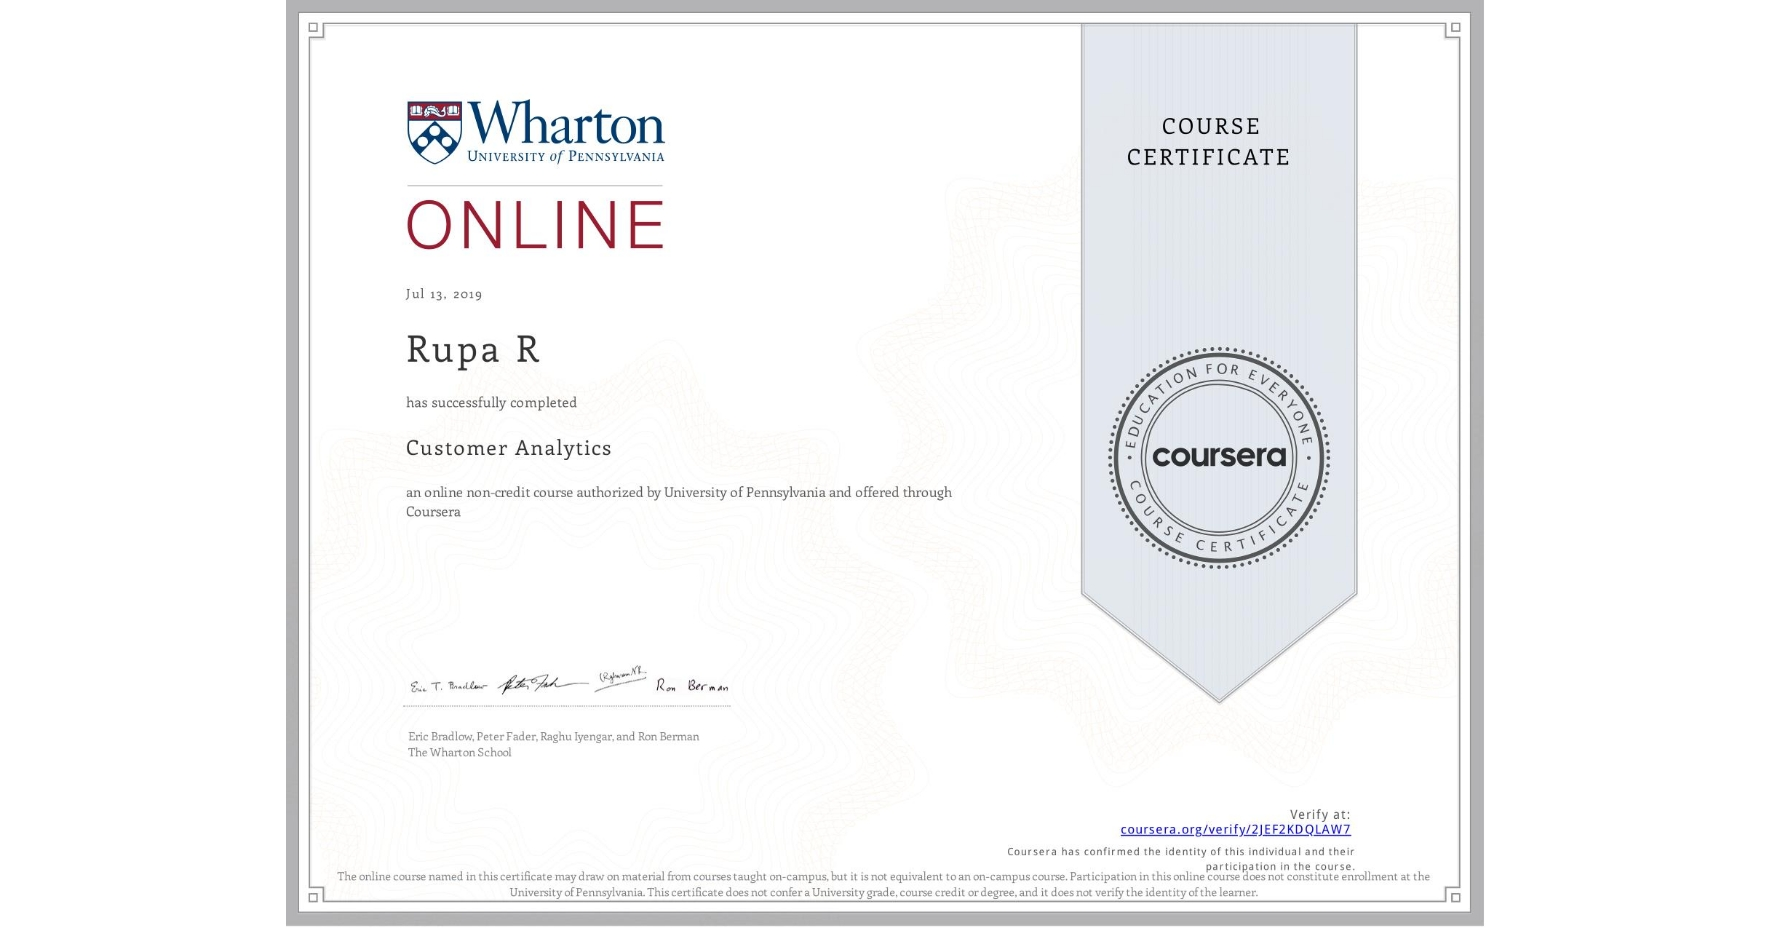 View certificate for Rupa R, Customer Analytics, an online non-credit course authorized by University of Pennsylvania and offered through Coursera